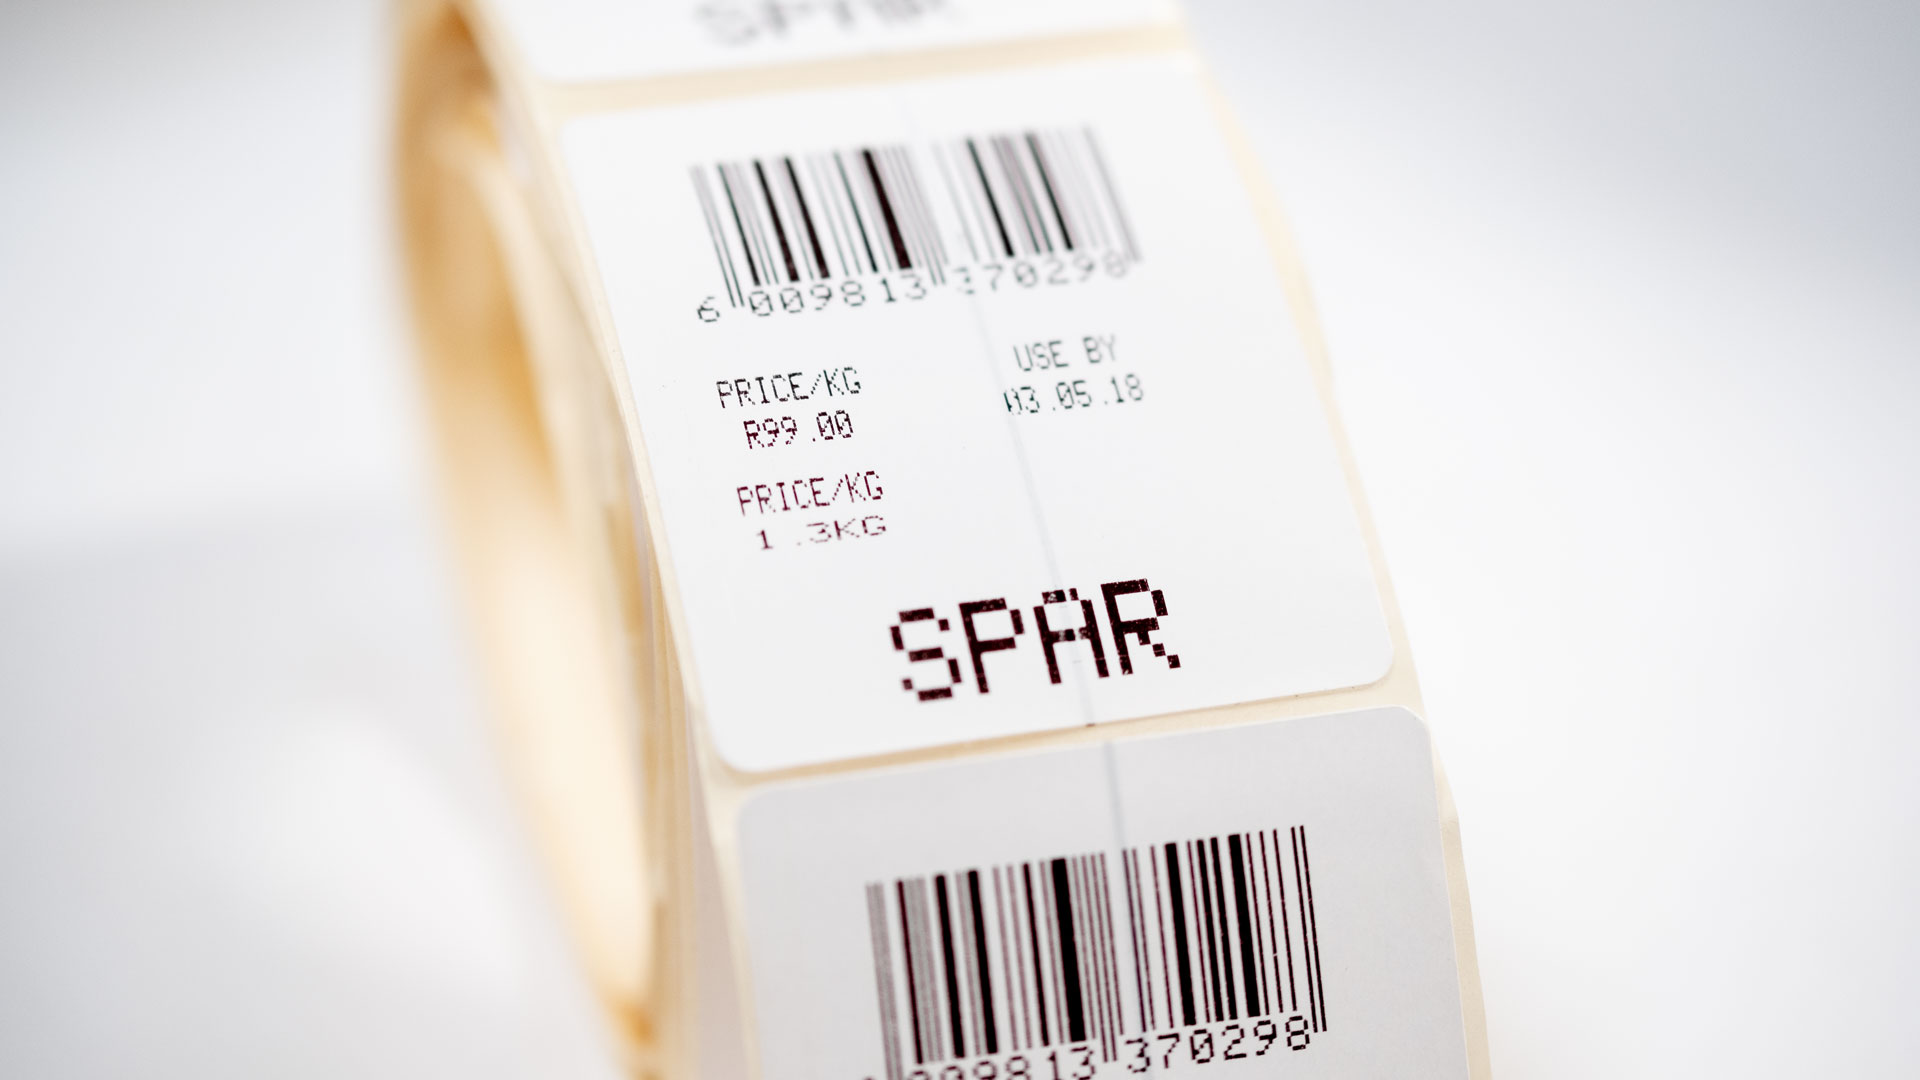 New EM weigh-scale food label